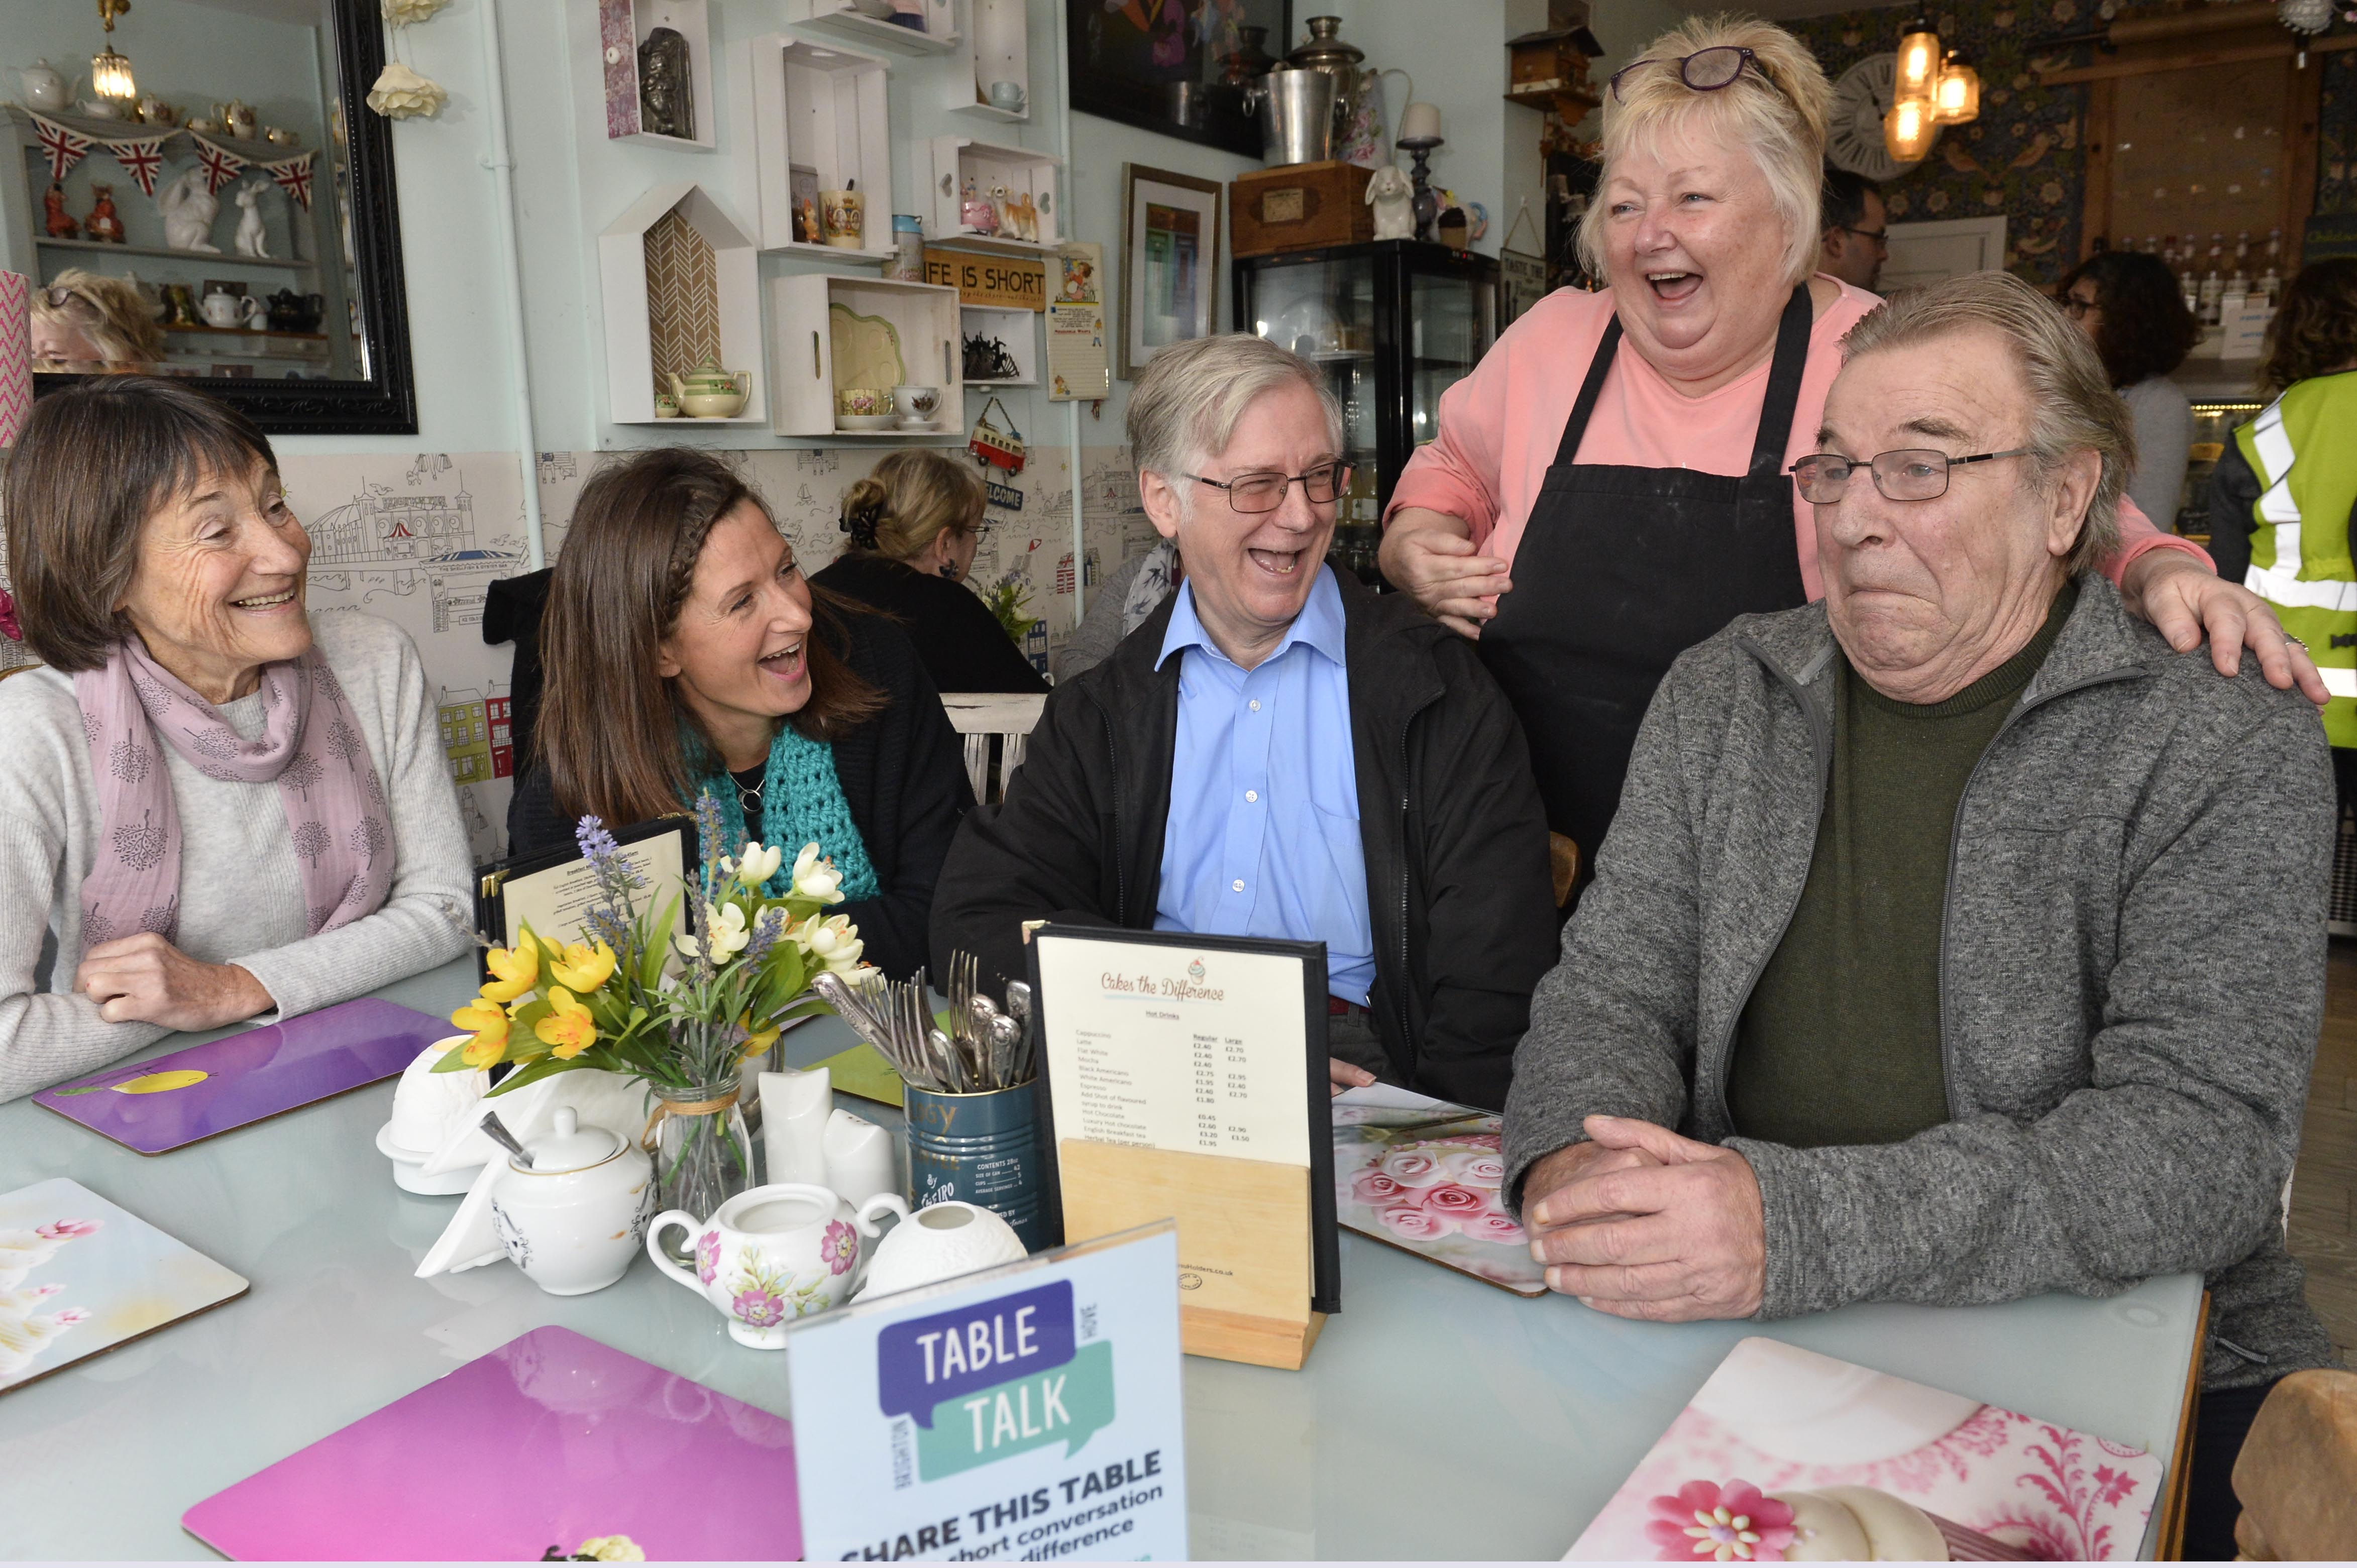 Table Talk at Cakes a Difference cafe in Patcham